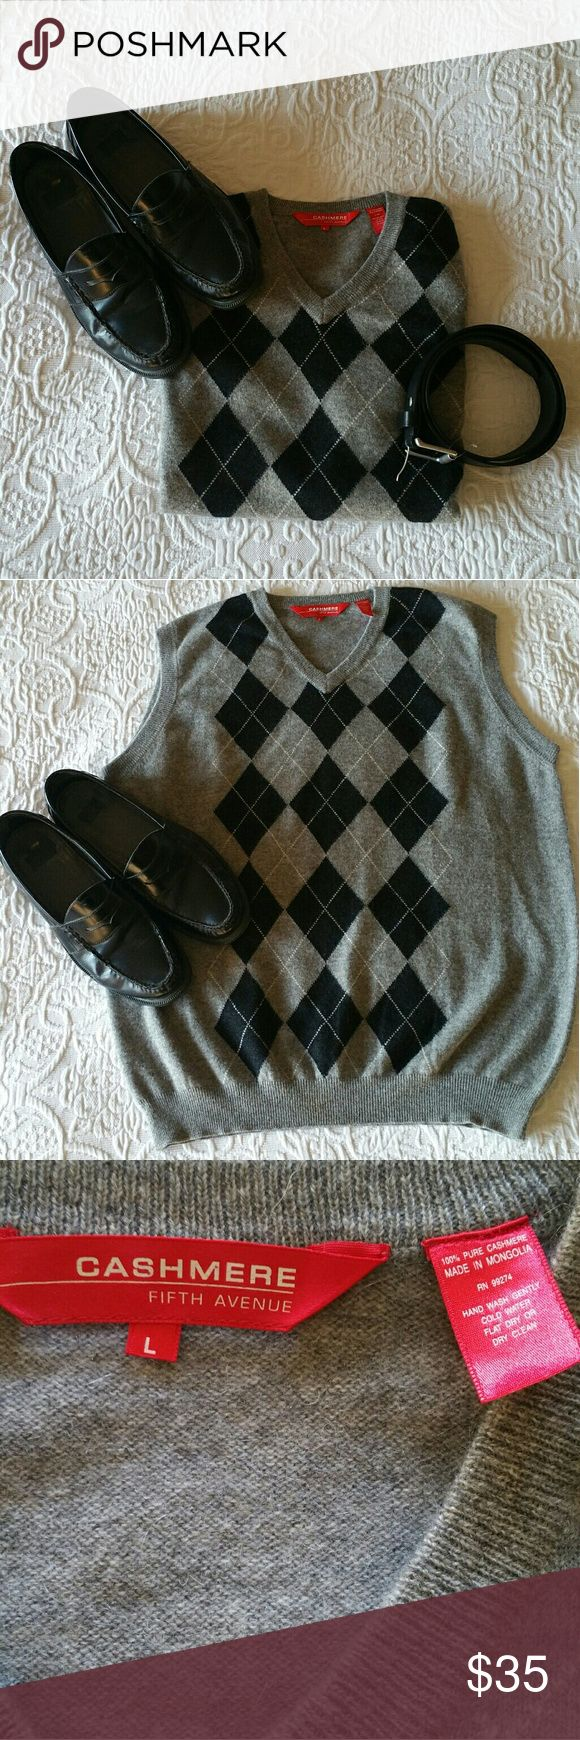 """EUC Men's Cashmere Argyle Sweater Vest This EUC Men's Cashmere Argyle Sweater Vest is grey and black and measures 23"""" across from the bottom of the armholes and 27.5"""" long from the shoulder to the bottom. Fifth Avenue Sweaters V-Neck"""